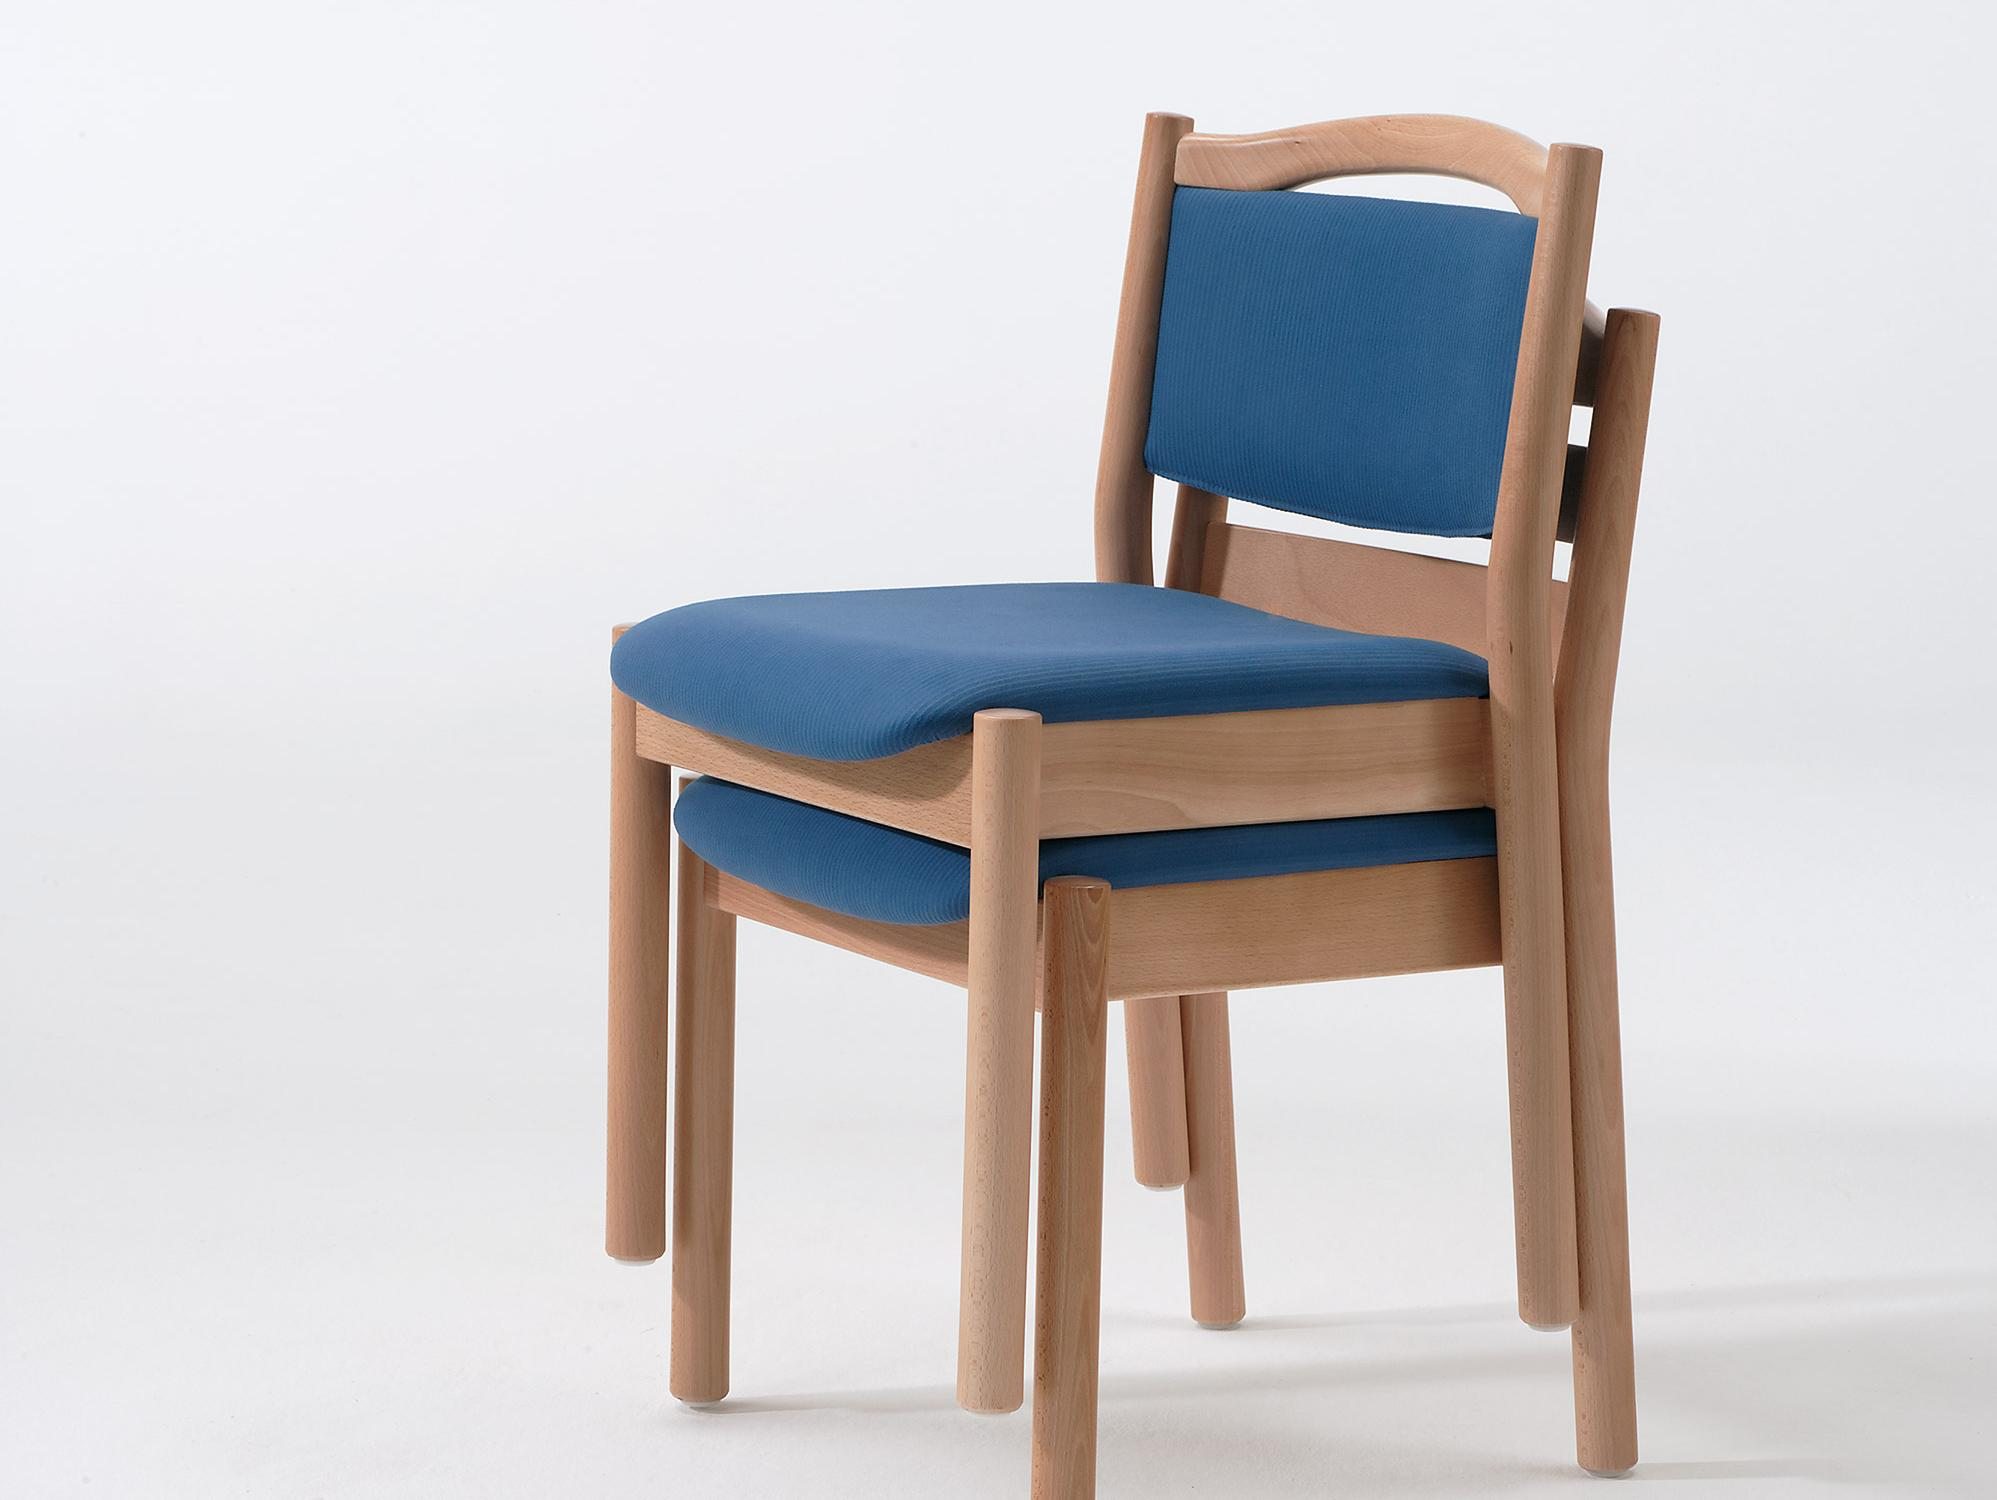 Stacking chairs from the Primo furnishing range